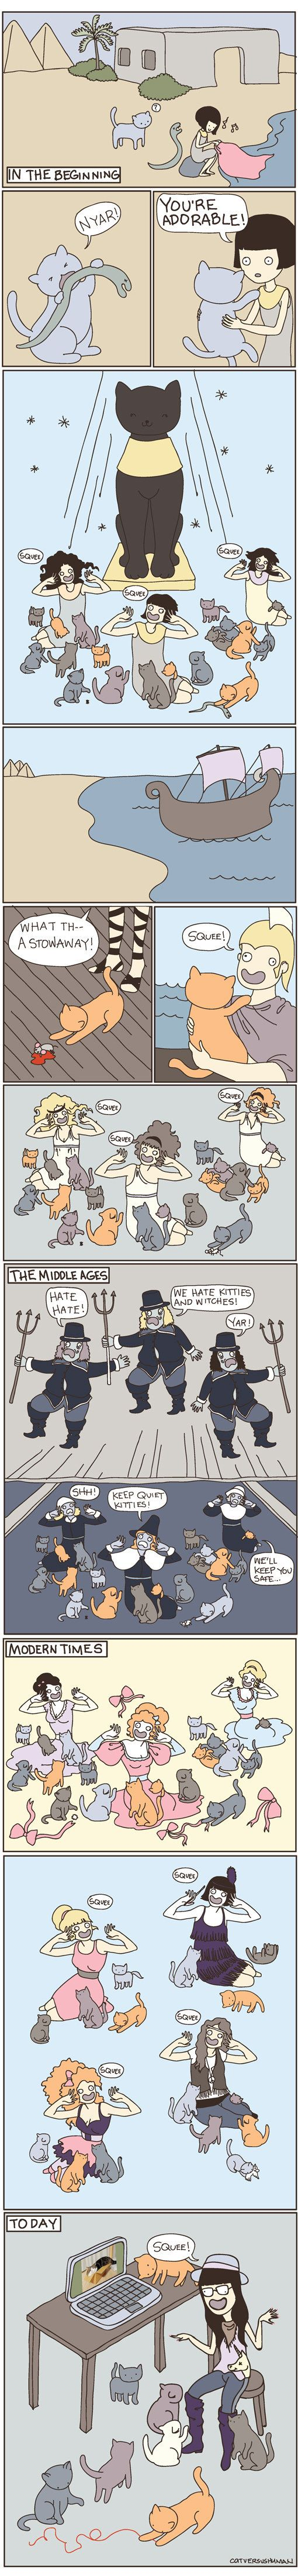 """Cats through the ages. via Buzzfeed, but credit goes to """"cat versus human"""" comic. which is the best."""